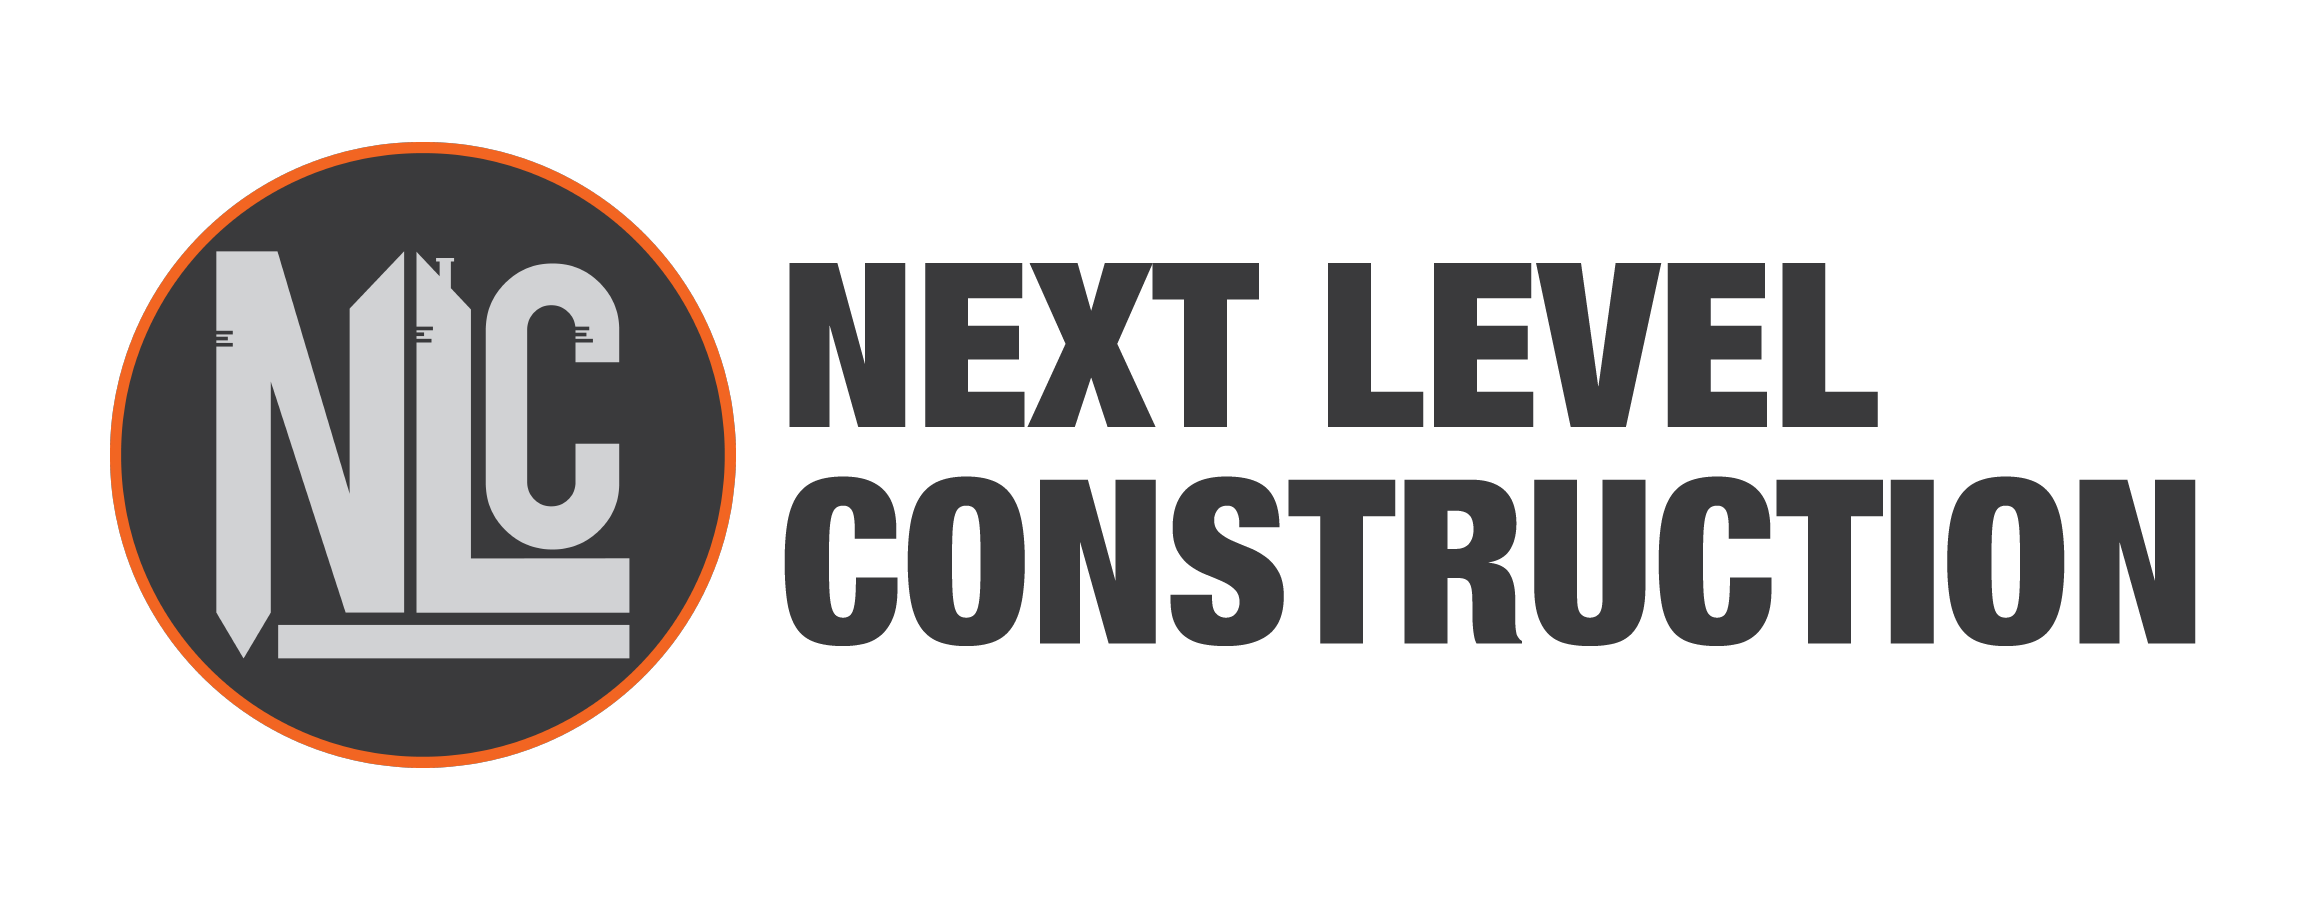 next-level-construction-logo